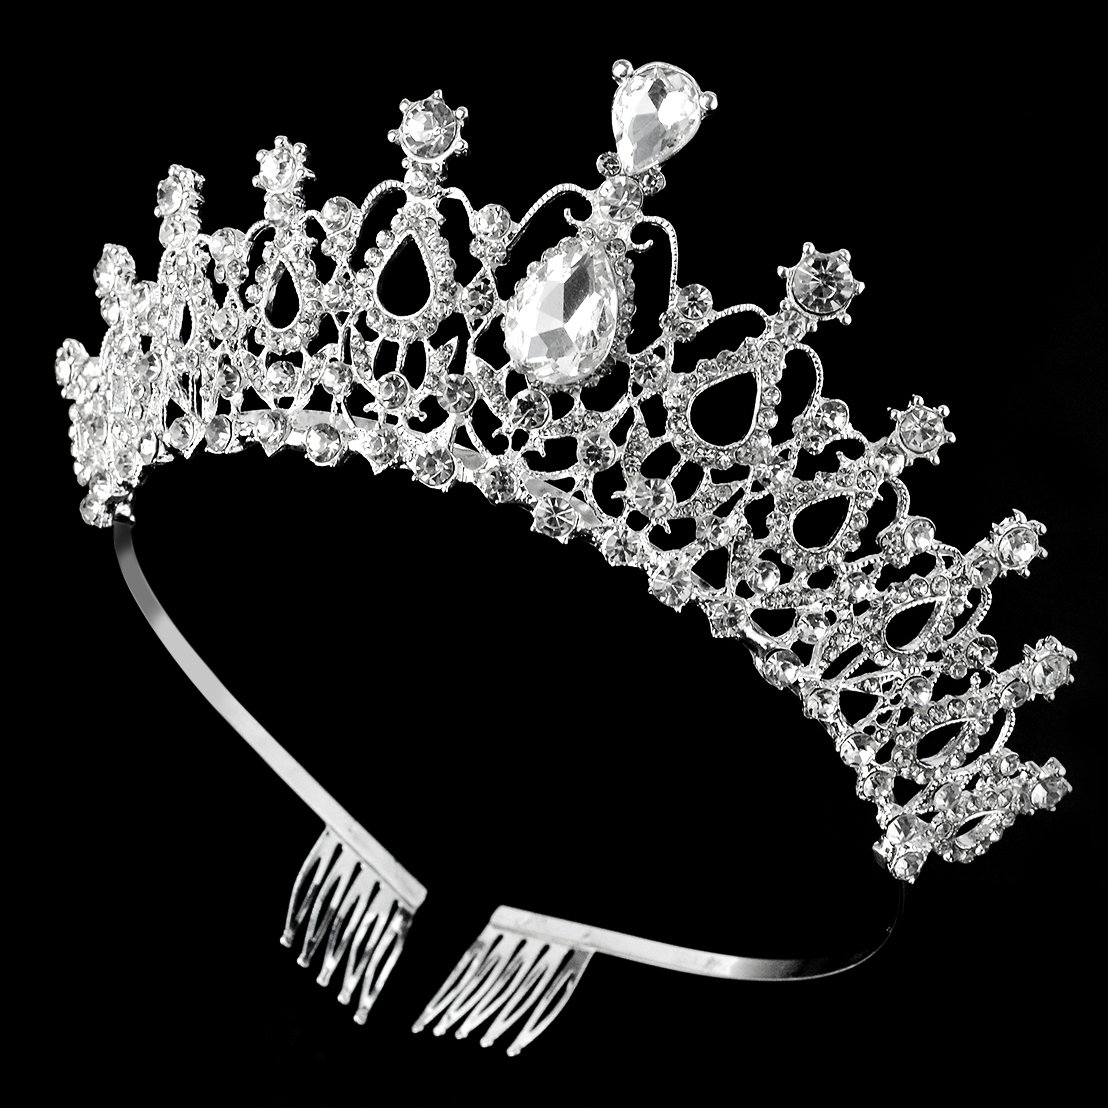 SUMERSHA Wedding Tiara Crown with Comb Bridal Pageant Rhinestone Crystal Prom Gorgeous Headband Hair Accessories For Party Birthday Christmas